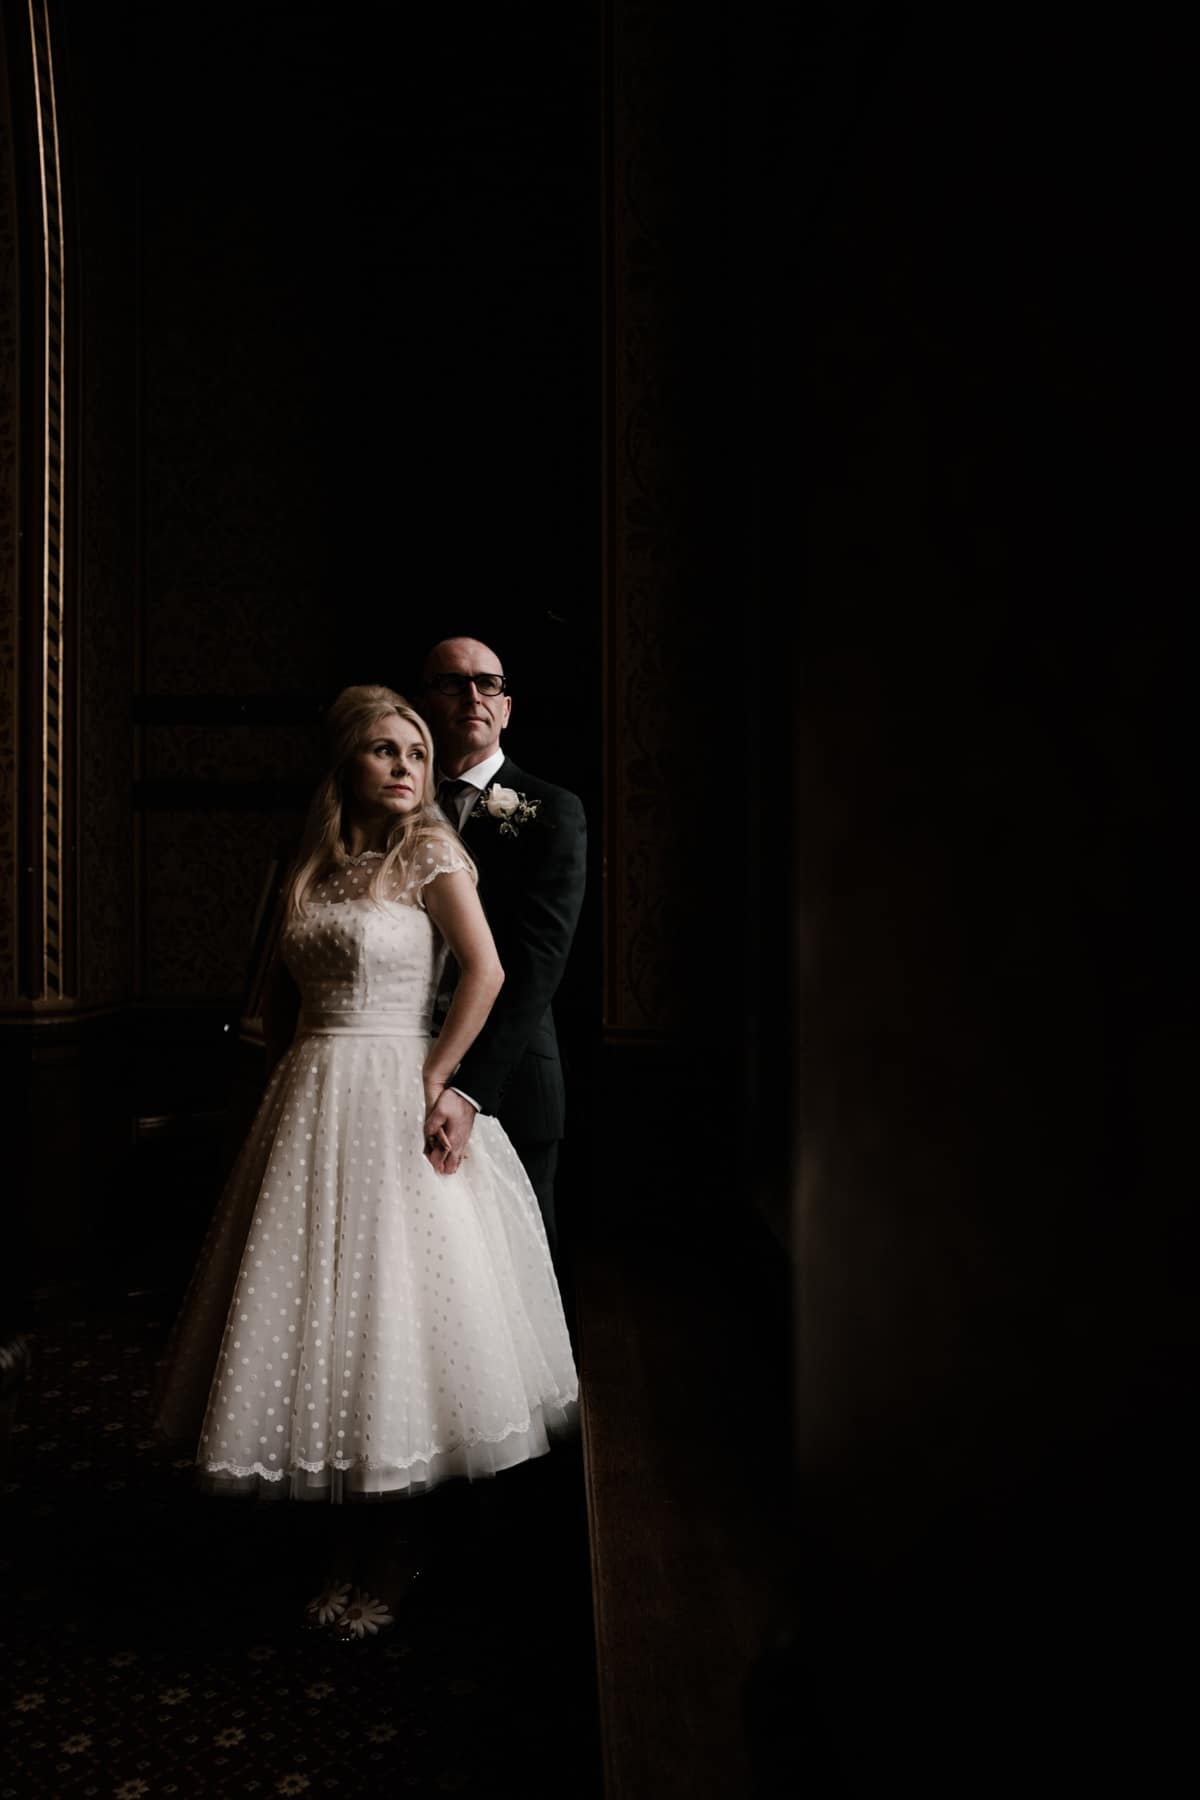 Wedding portrait at manchester Town hall